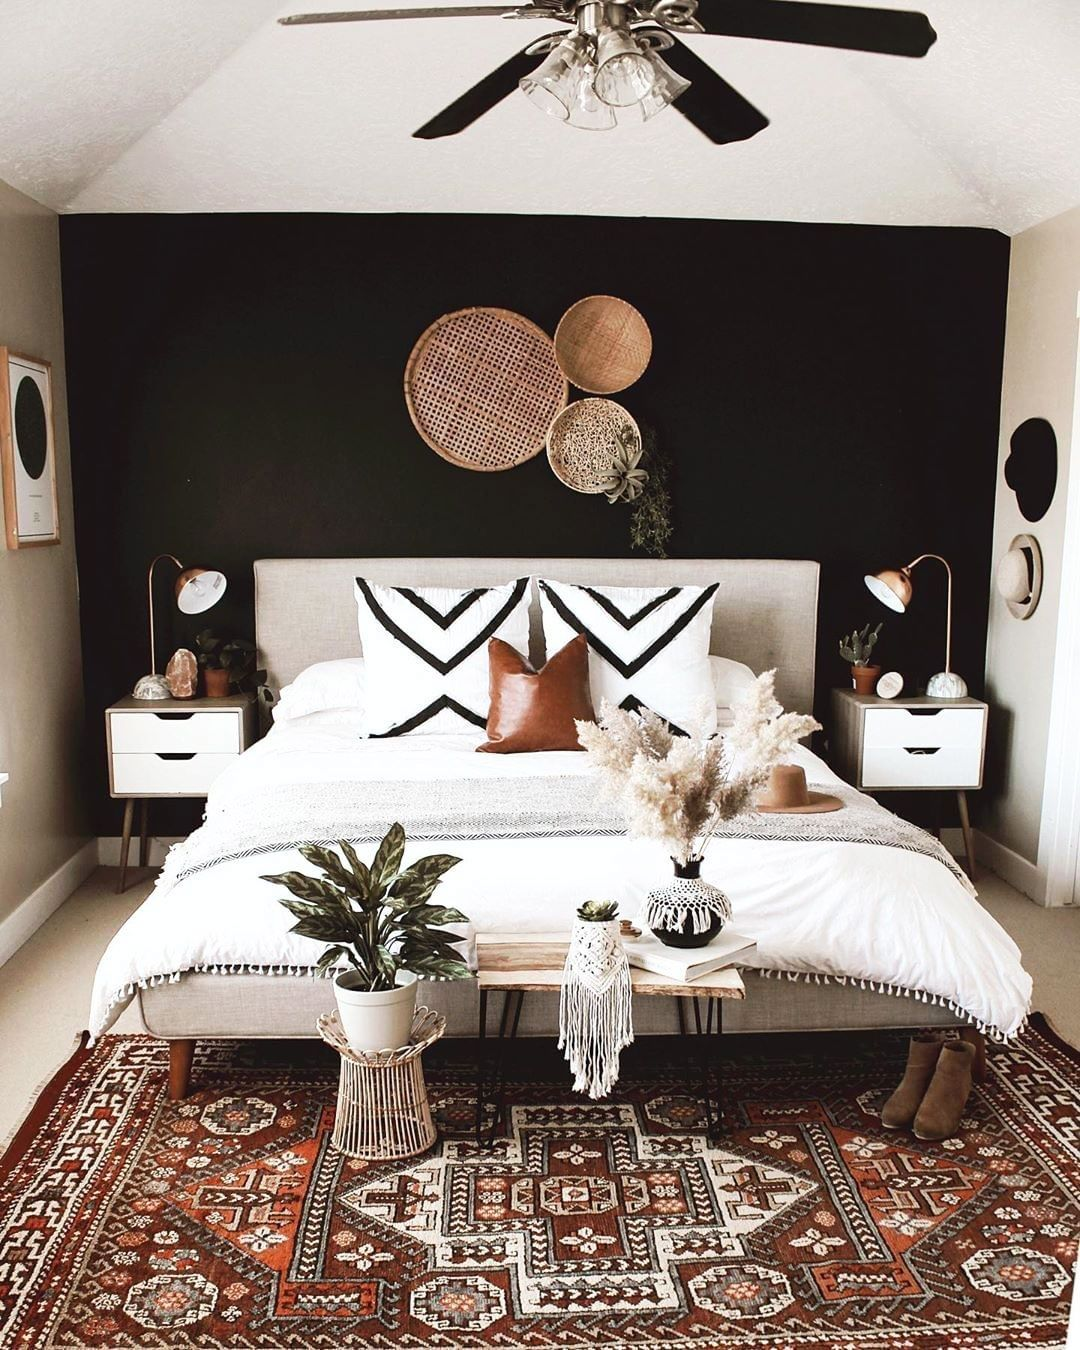 17 Best Home Decor Ideas For Living Room On A Budget Home Decor Bedroom Bedroom Interior Black Walls Bedroom